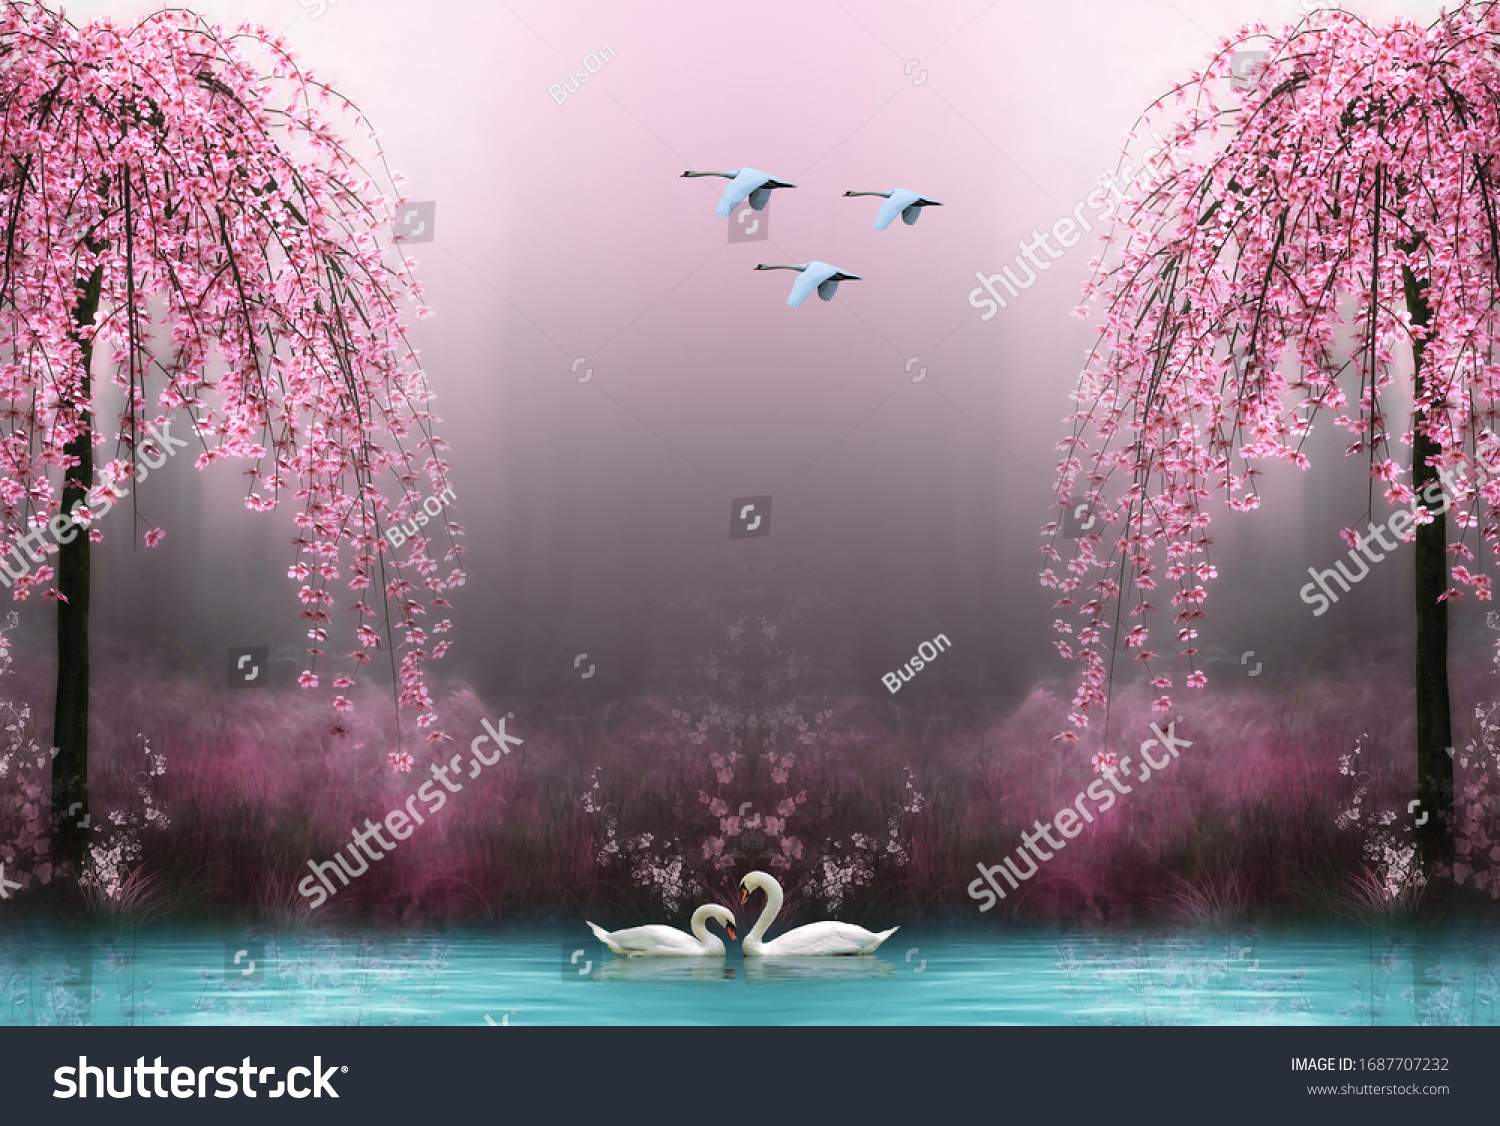 3d wallpaper swan pink tree water #1687707232